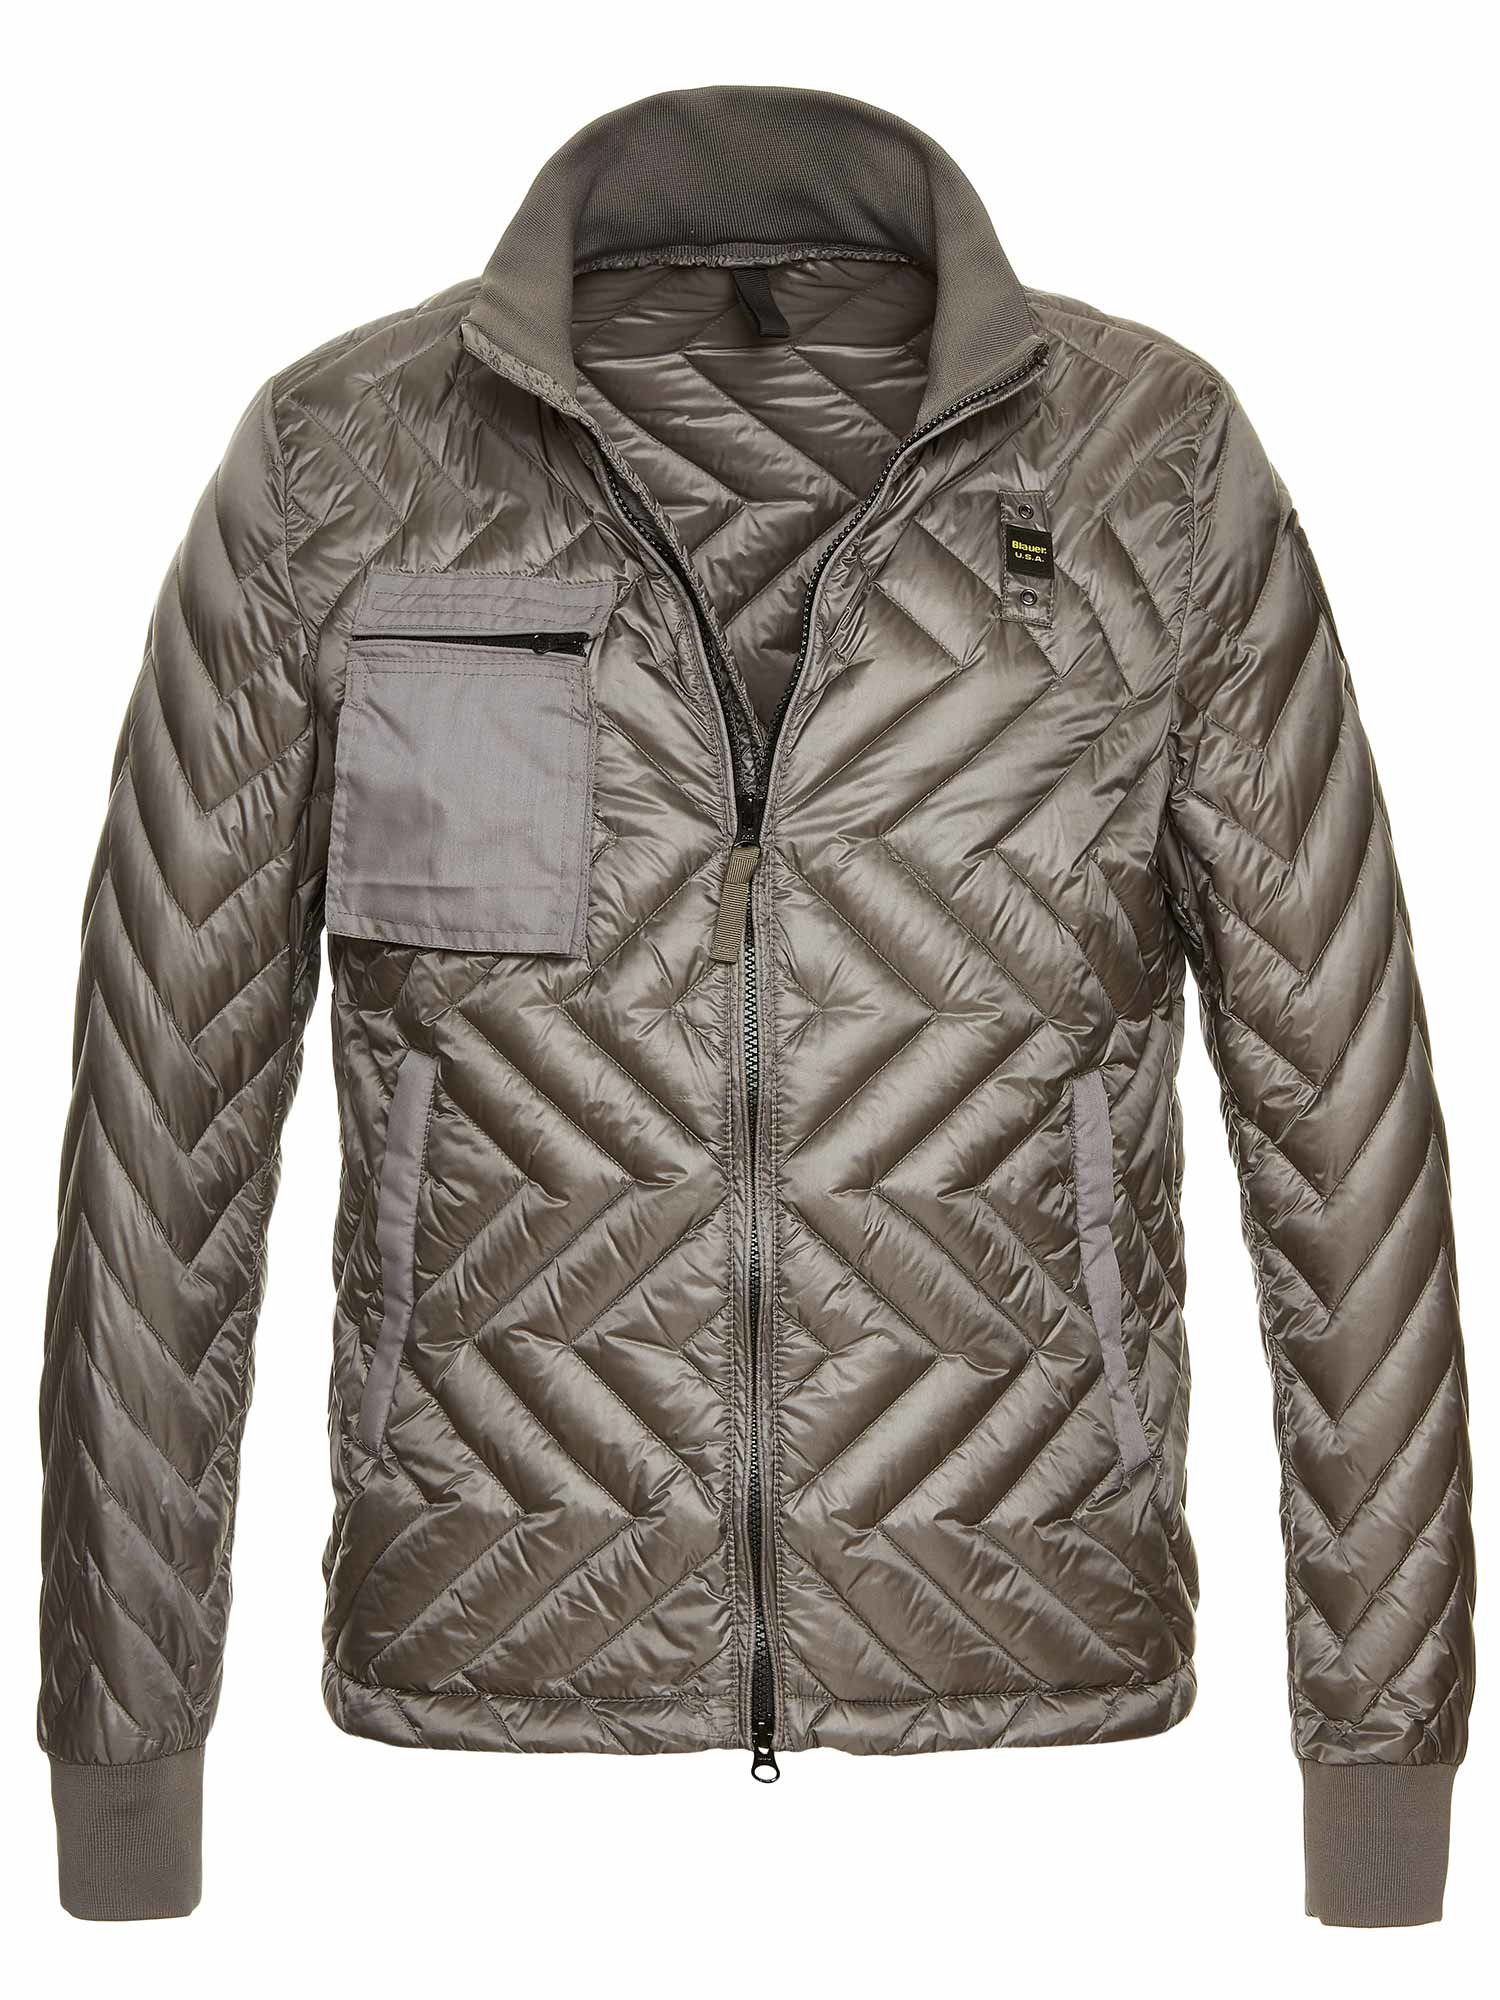 Blauer - NICOLAS ZIG ZAG QUILTED DOWN JACKET - Deep Grey - Blauer